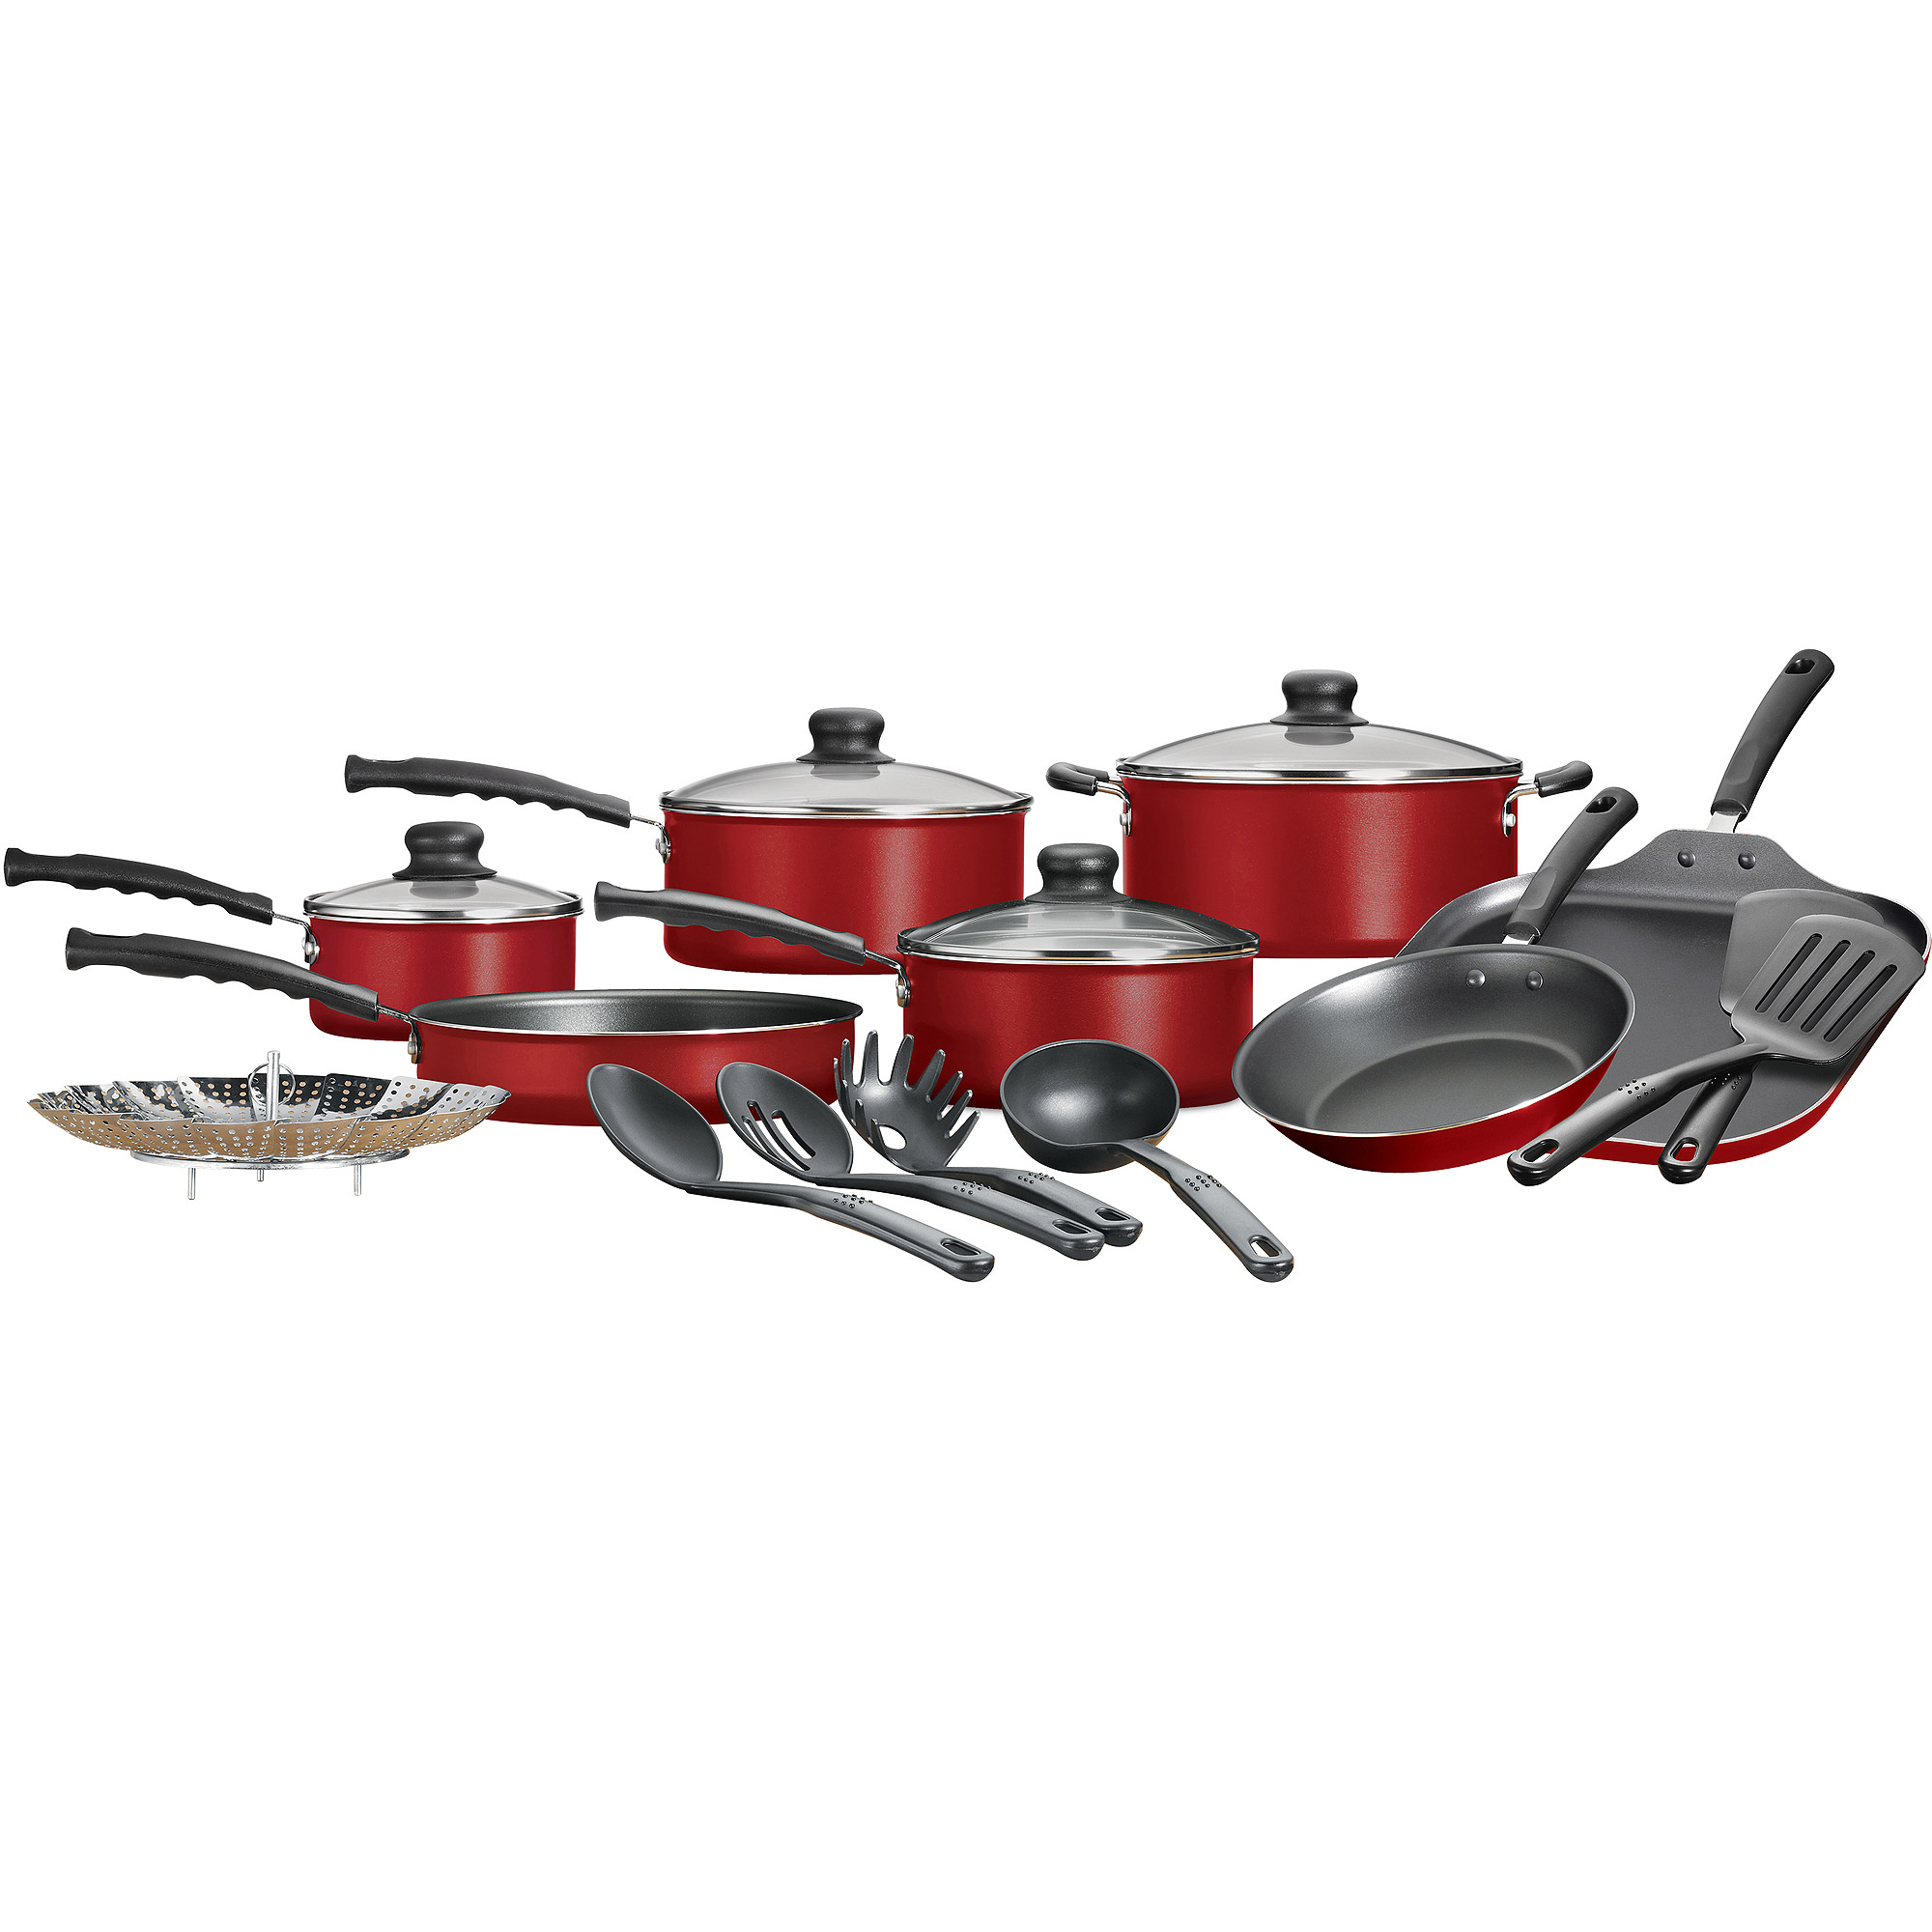 Mainstays 18-Piece Nonstick Cookware Set